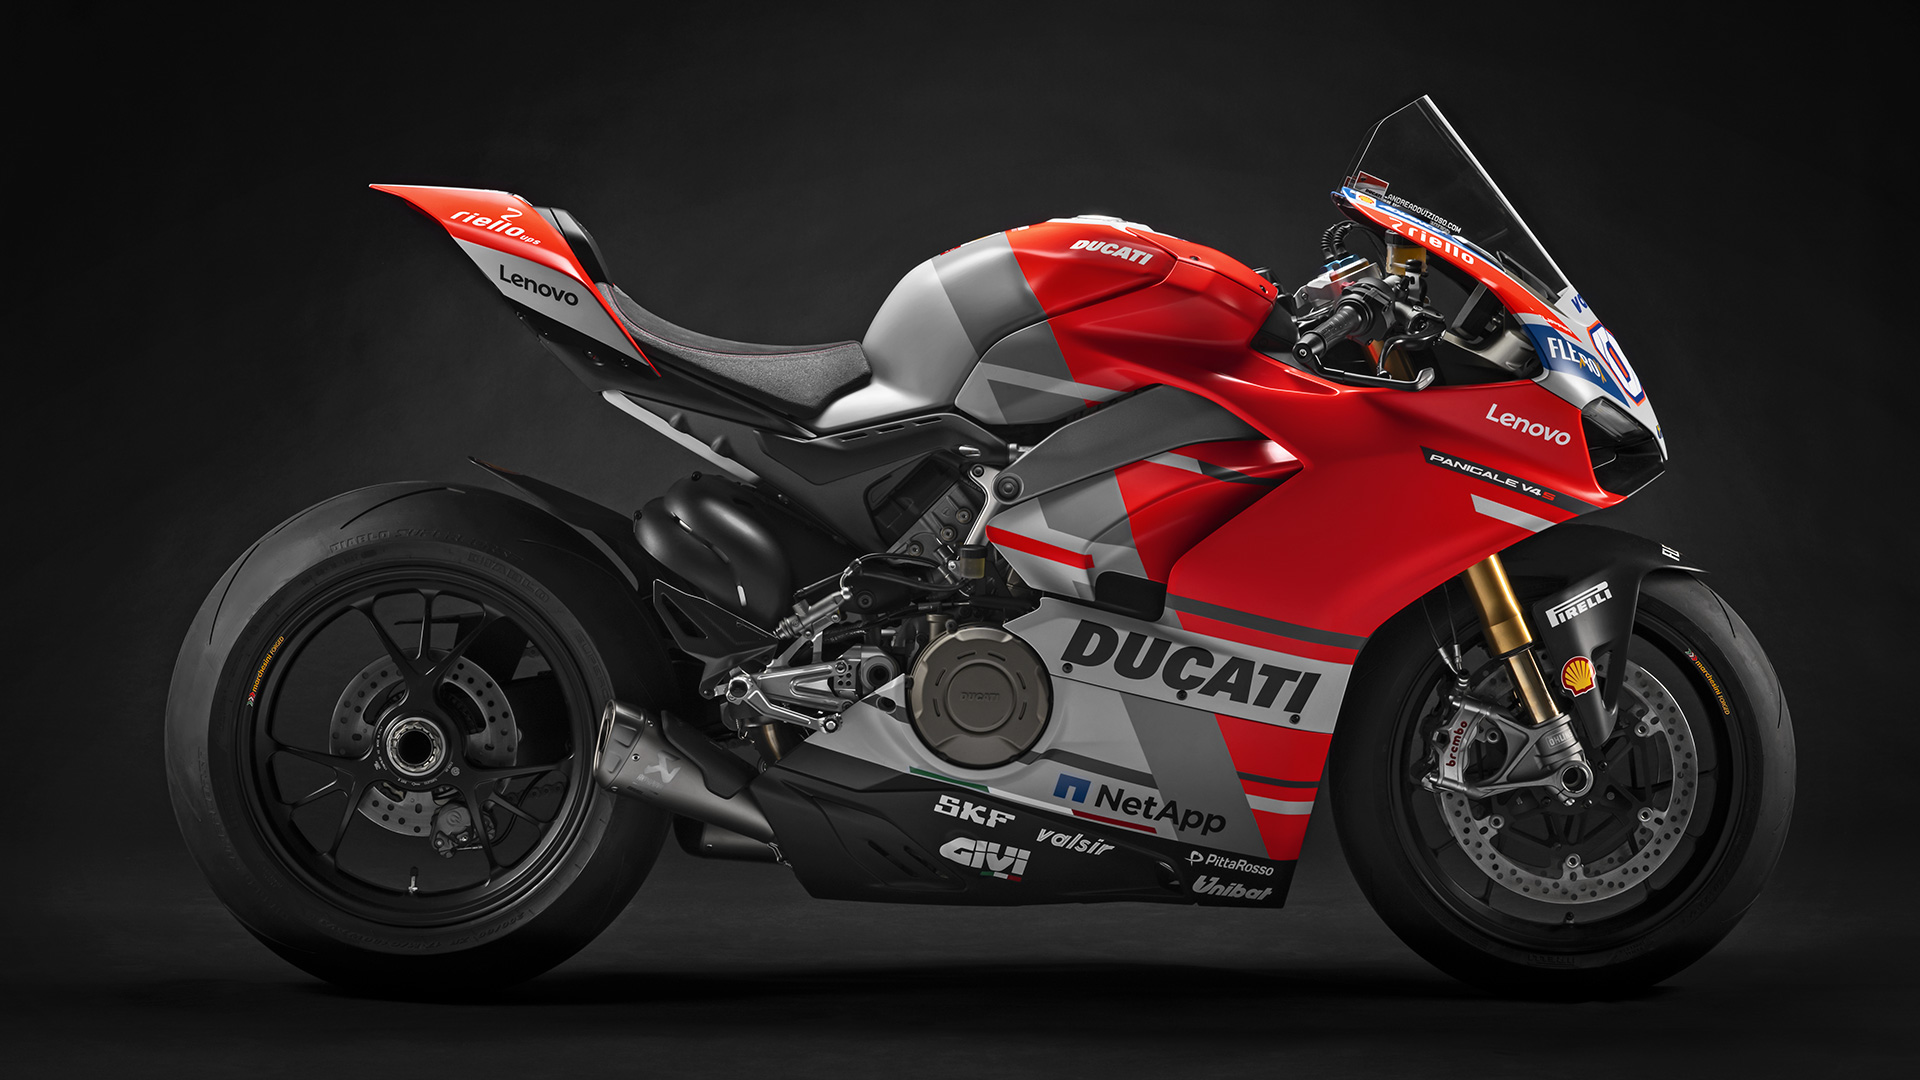 What Bike Are You Lusting For Today?-wdw18-gara-panigale-v4-01-gallery-1920x1080-4-_1565839770132.jpg